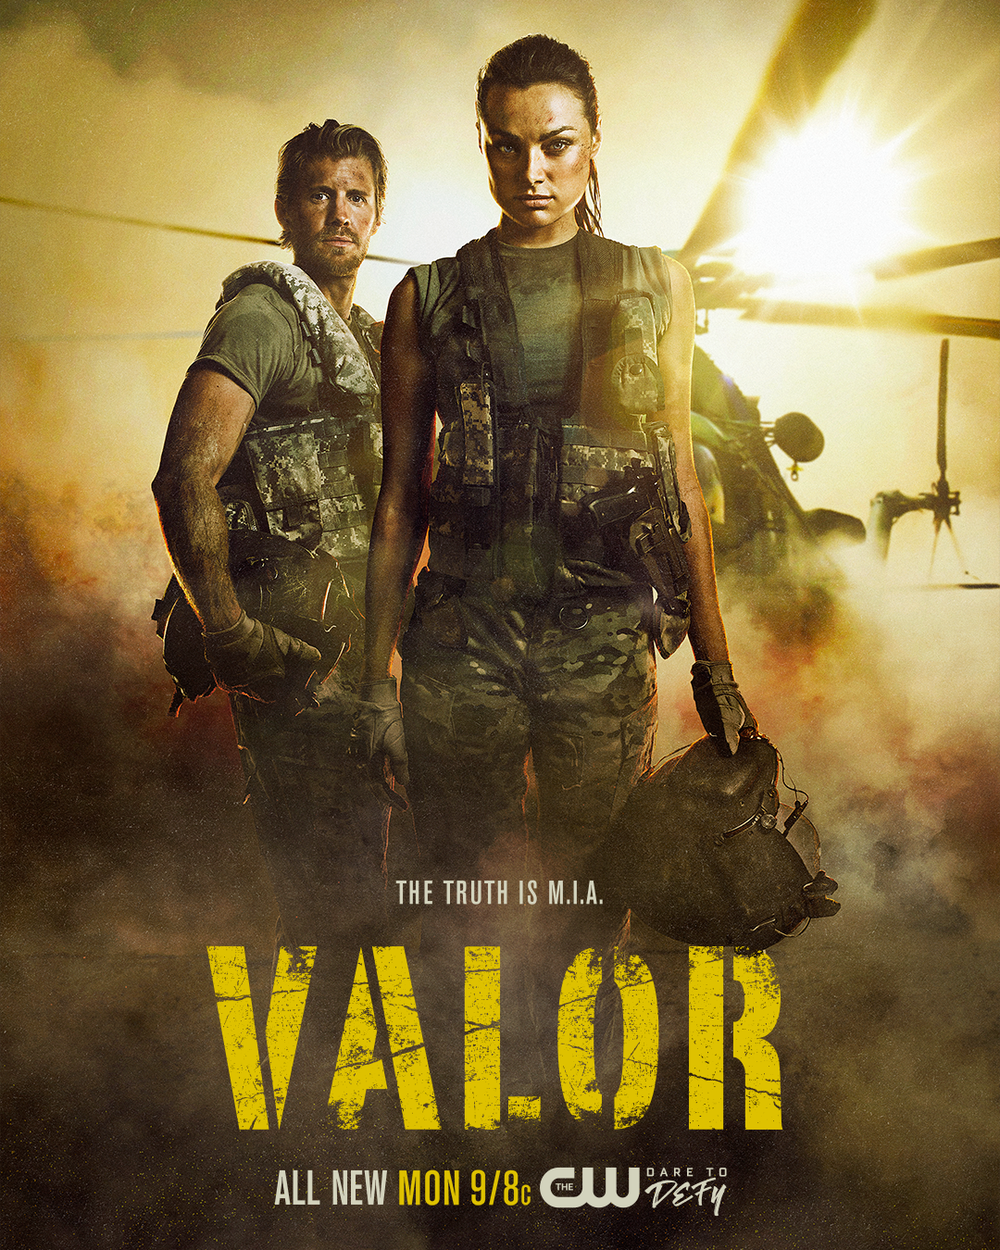 Valor. A new TV series, Monday nights at 9/8c on The CW.  http://www.cwtv.com/shows/valor/